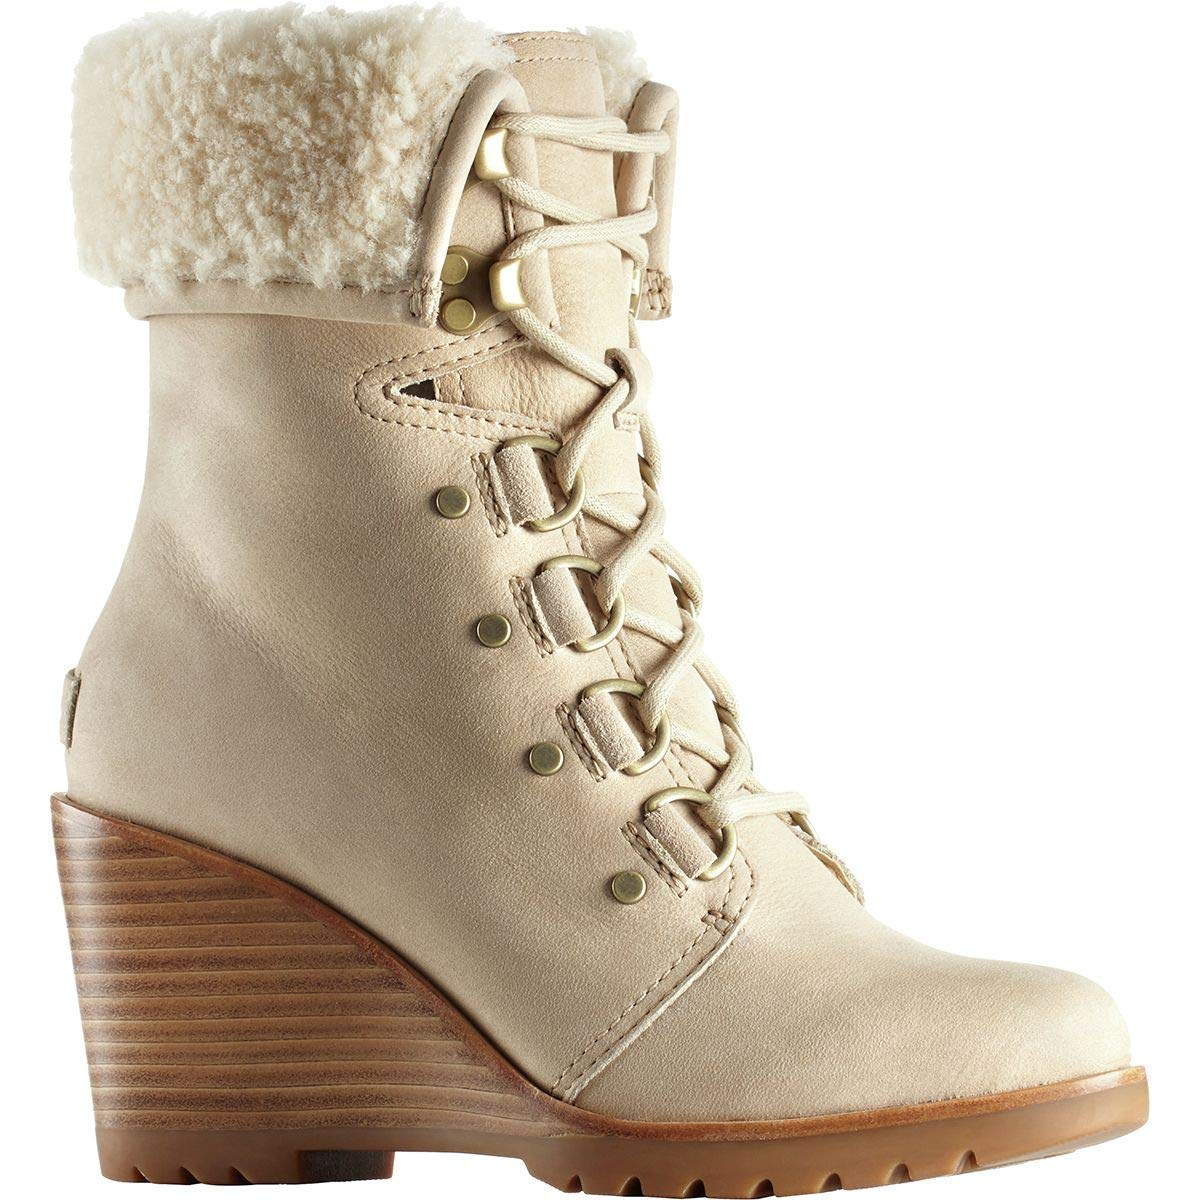 Sorel After Hours Lace Up Shea Boots Oatmeal Nubuck